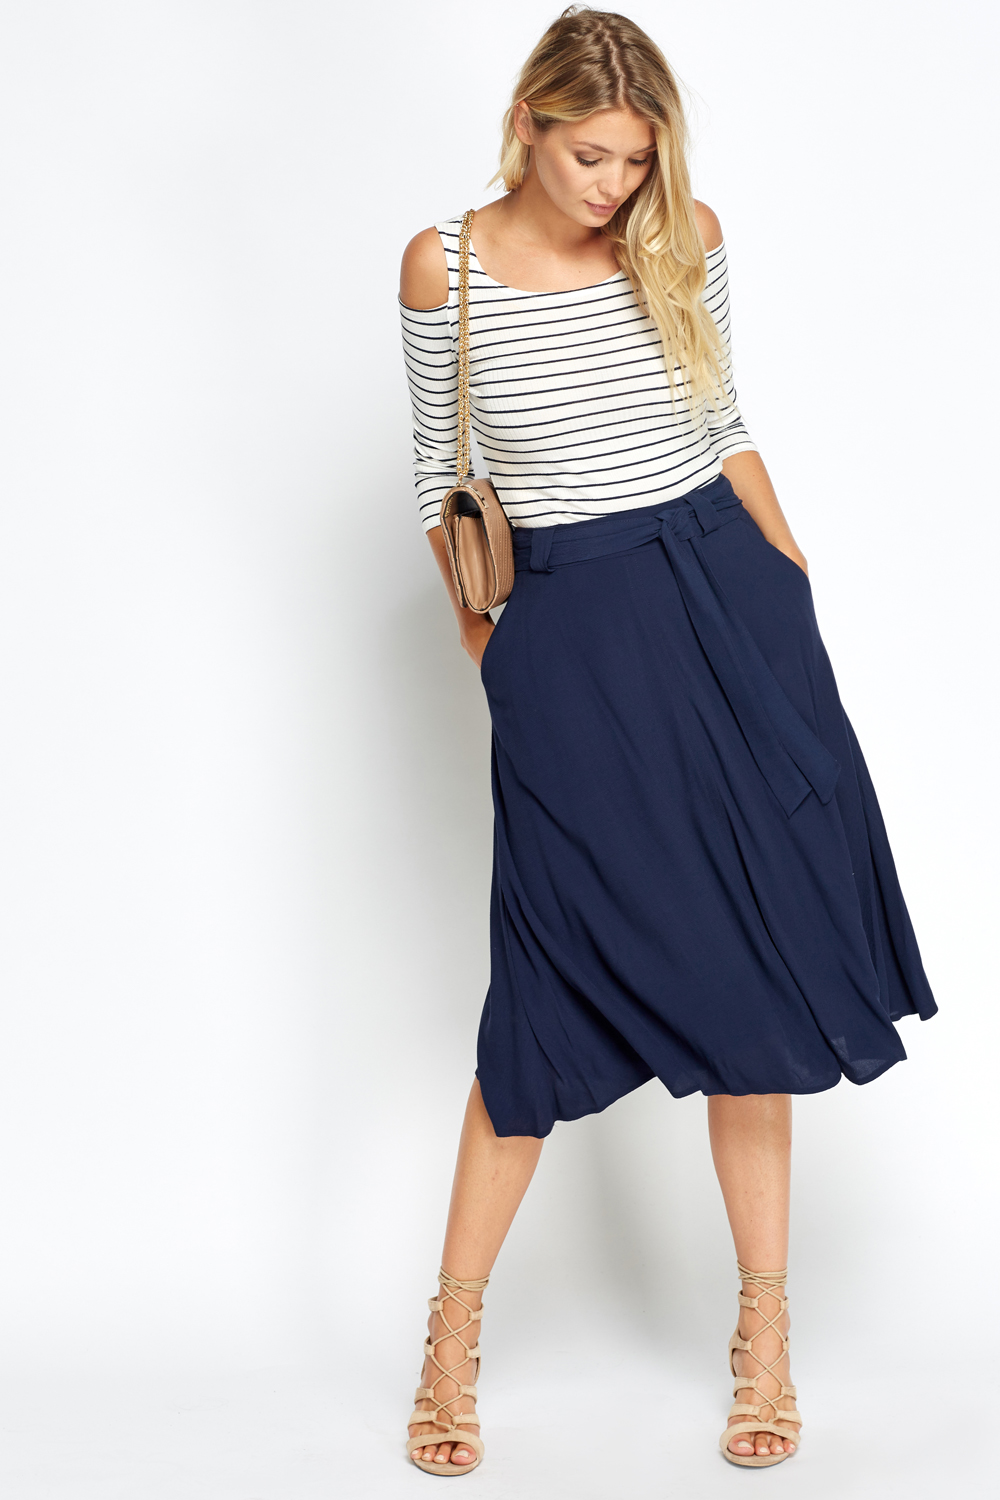 Tie Up Navy Midi Skirt - Just £5